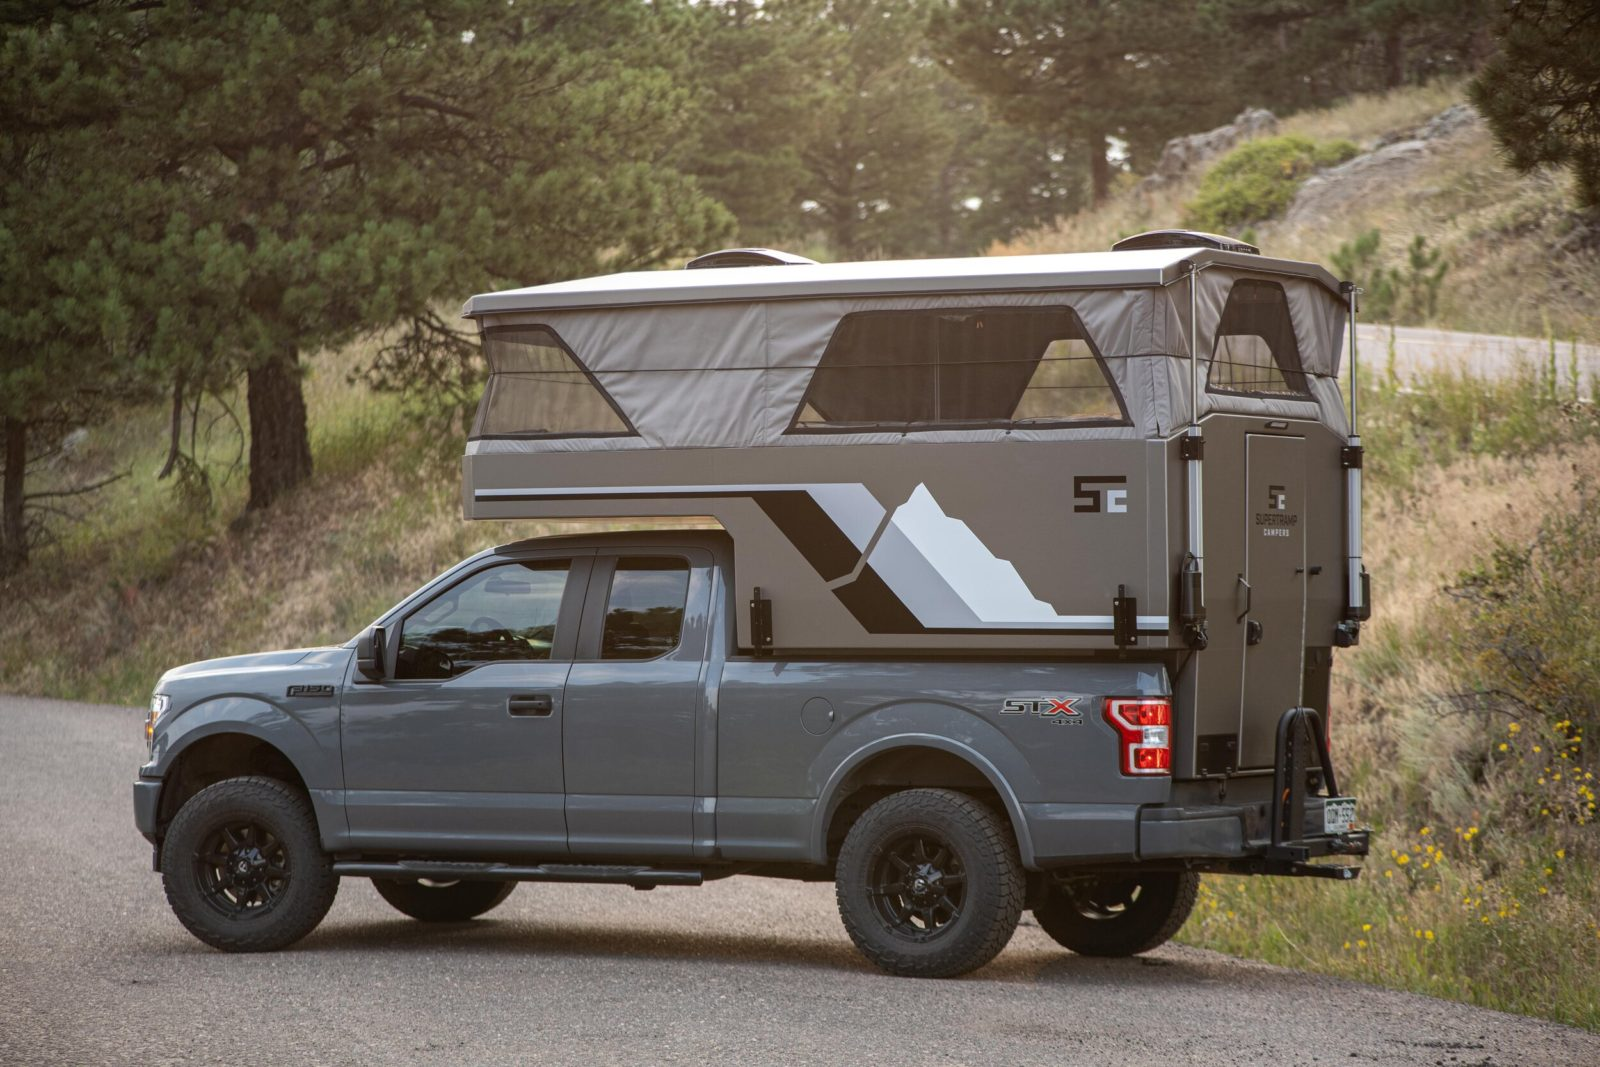 supertramp-flagship-lt-camper-fits-any-full-size-truck,-is-light-but-fully-equipped